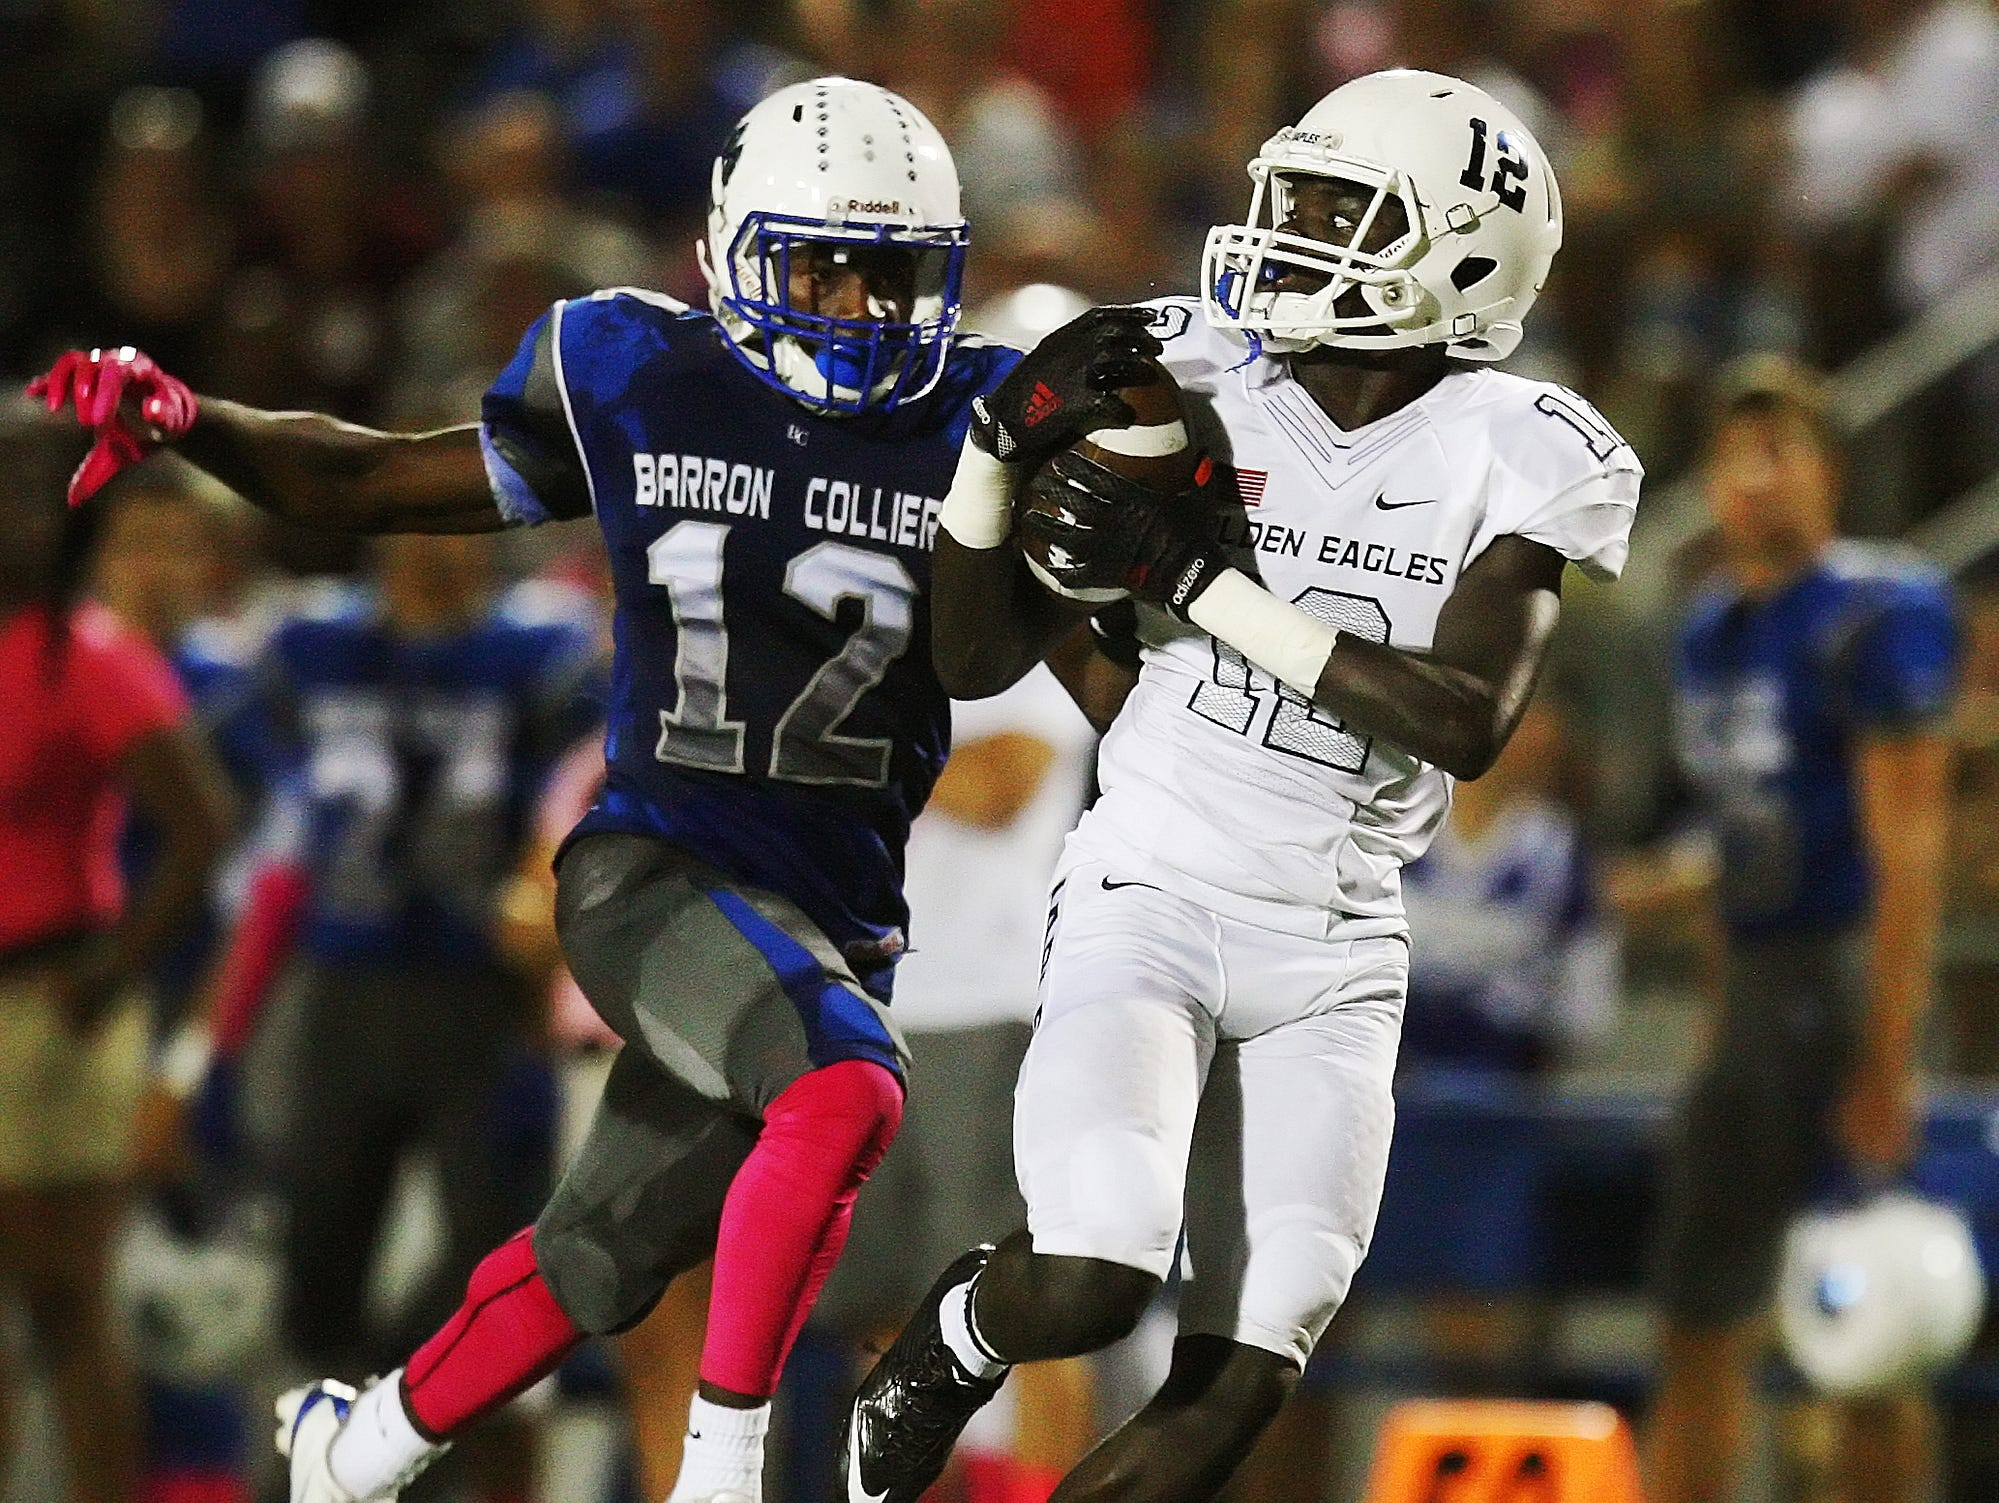 Naples High School's Woody Theork catches a pass against Barron Collier's Dana Brown on Friday at Barron Collier High School in Naples. Naples beat Barron Collier 48-14.